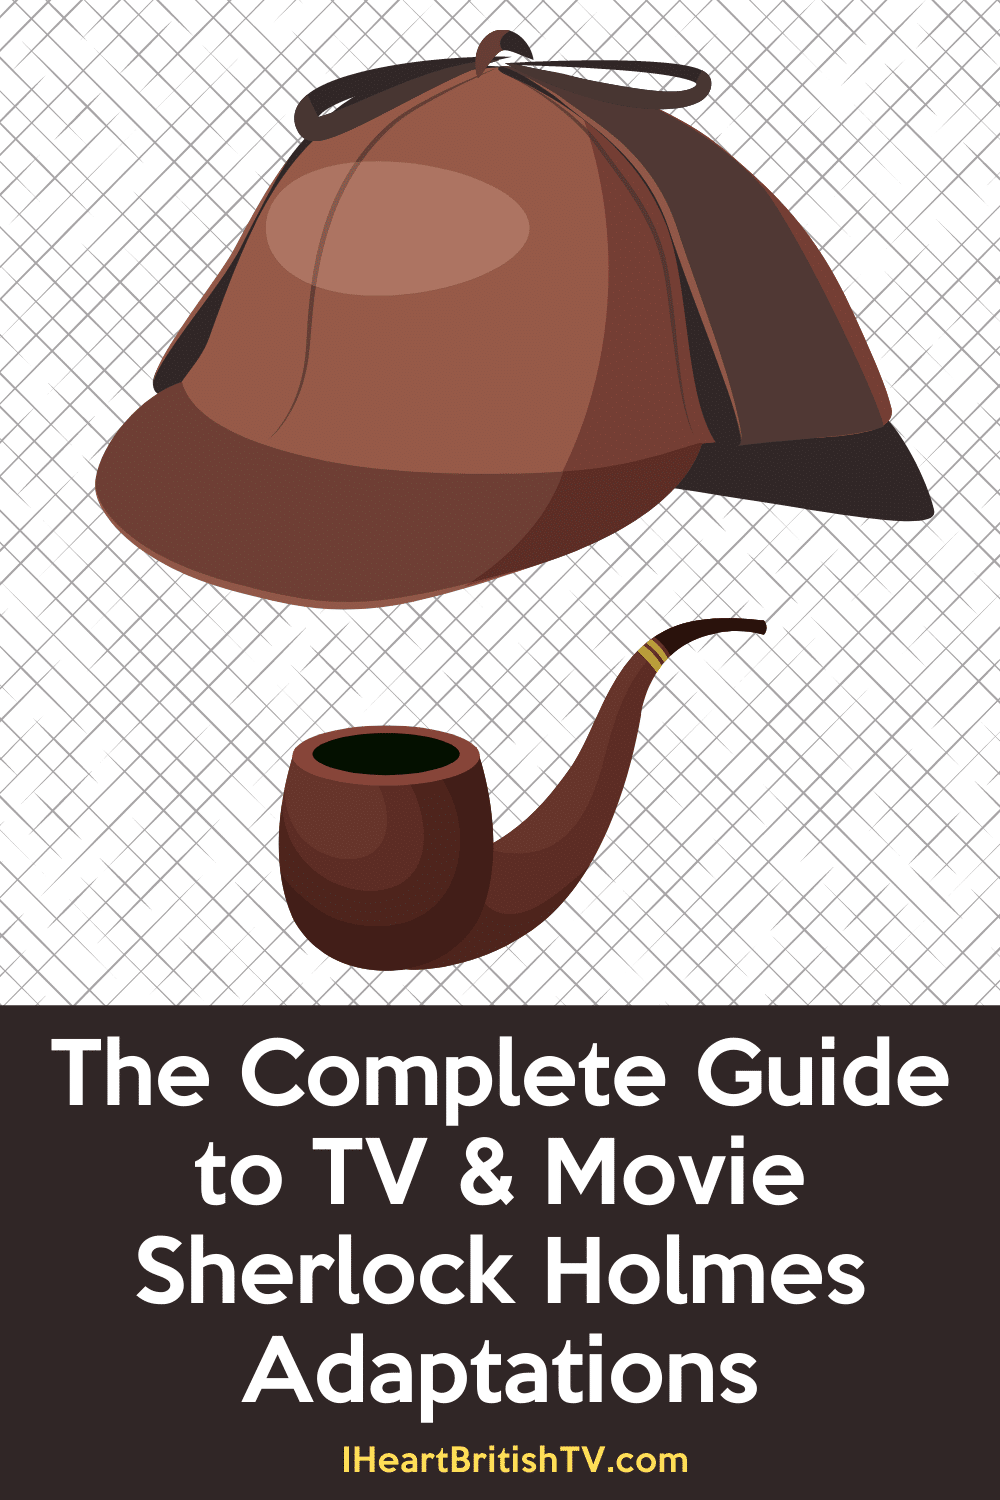 The Complete Guide to Sherlock Holmes Adaptations 35